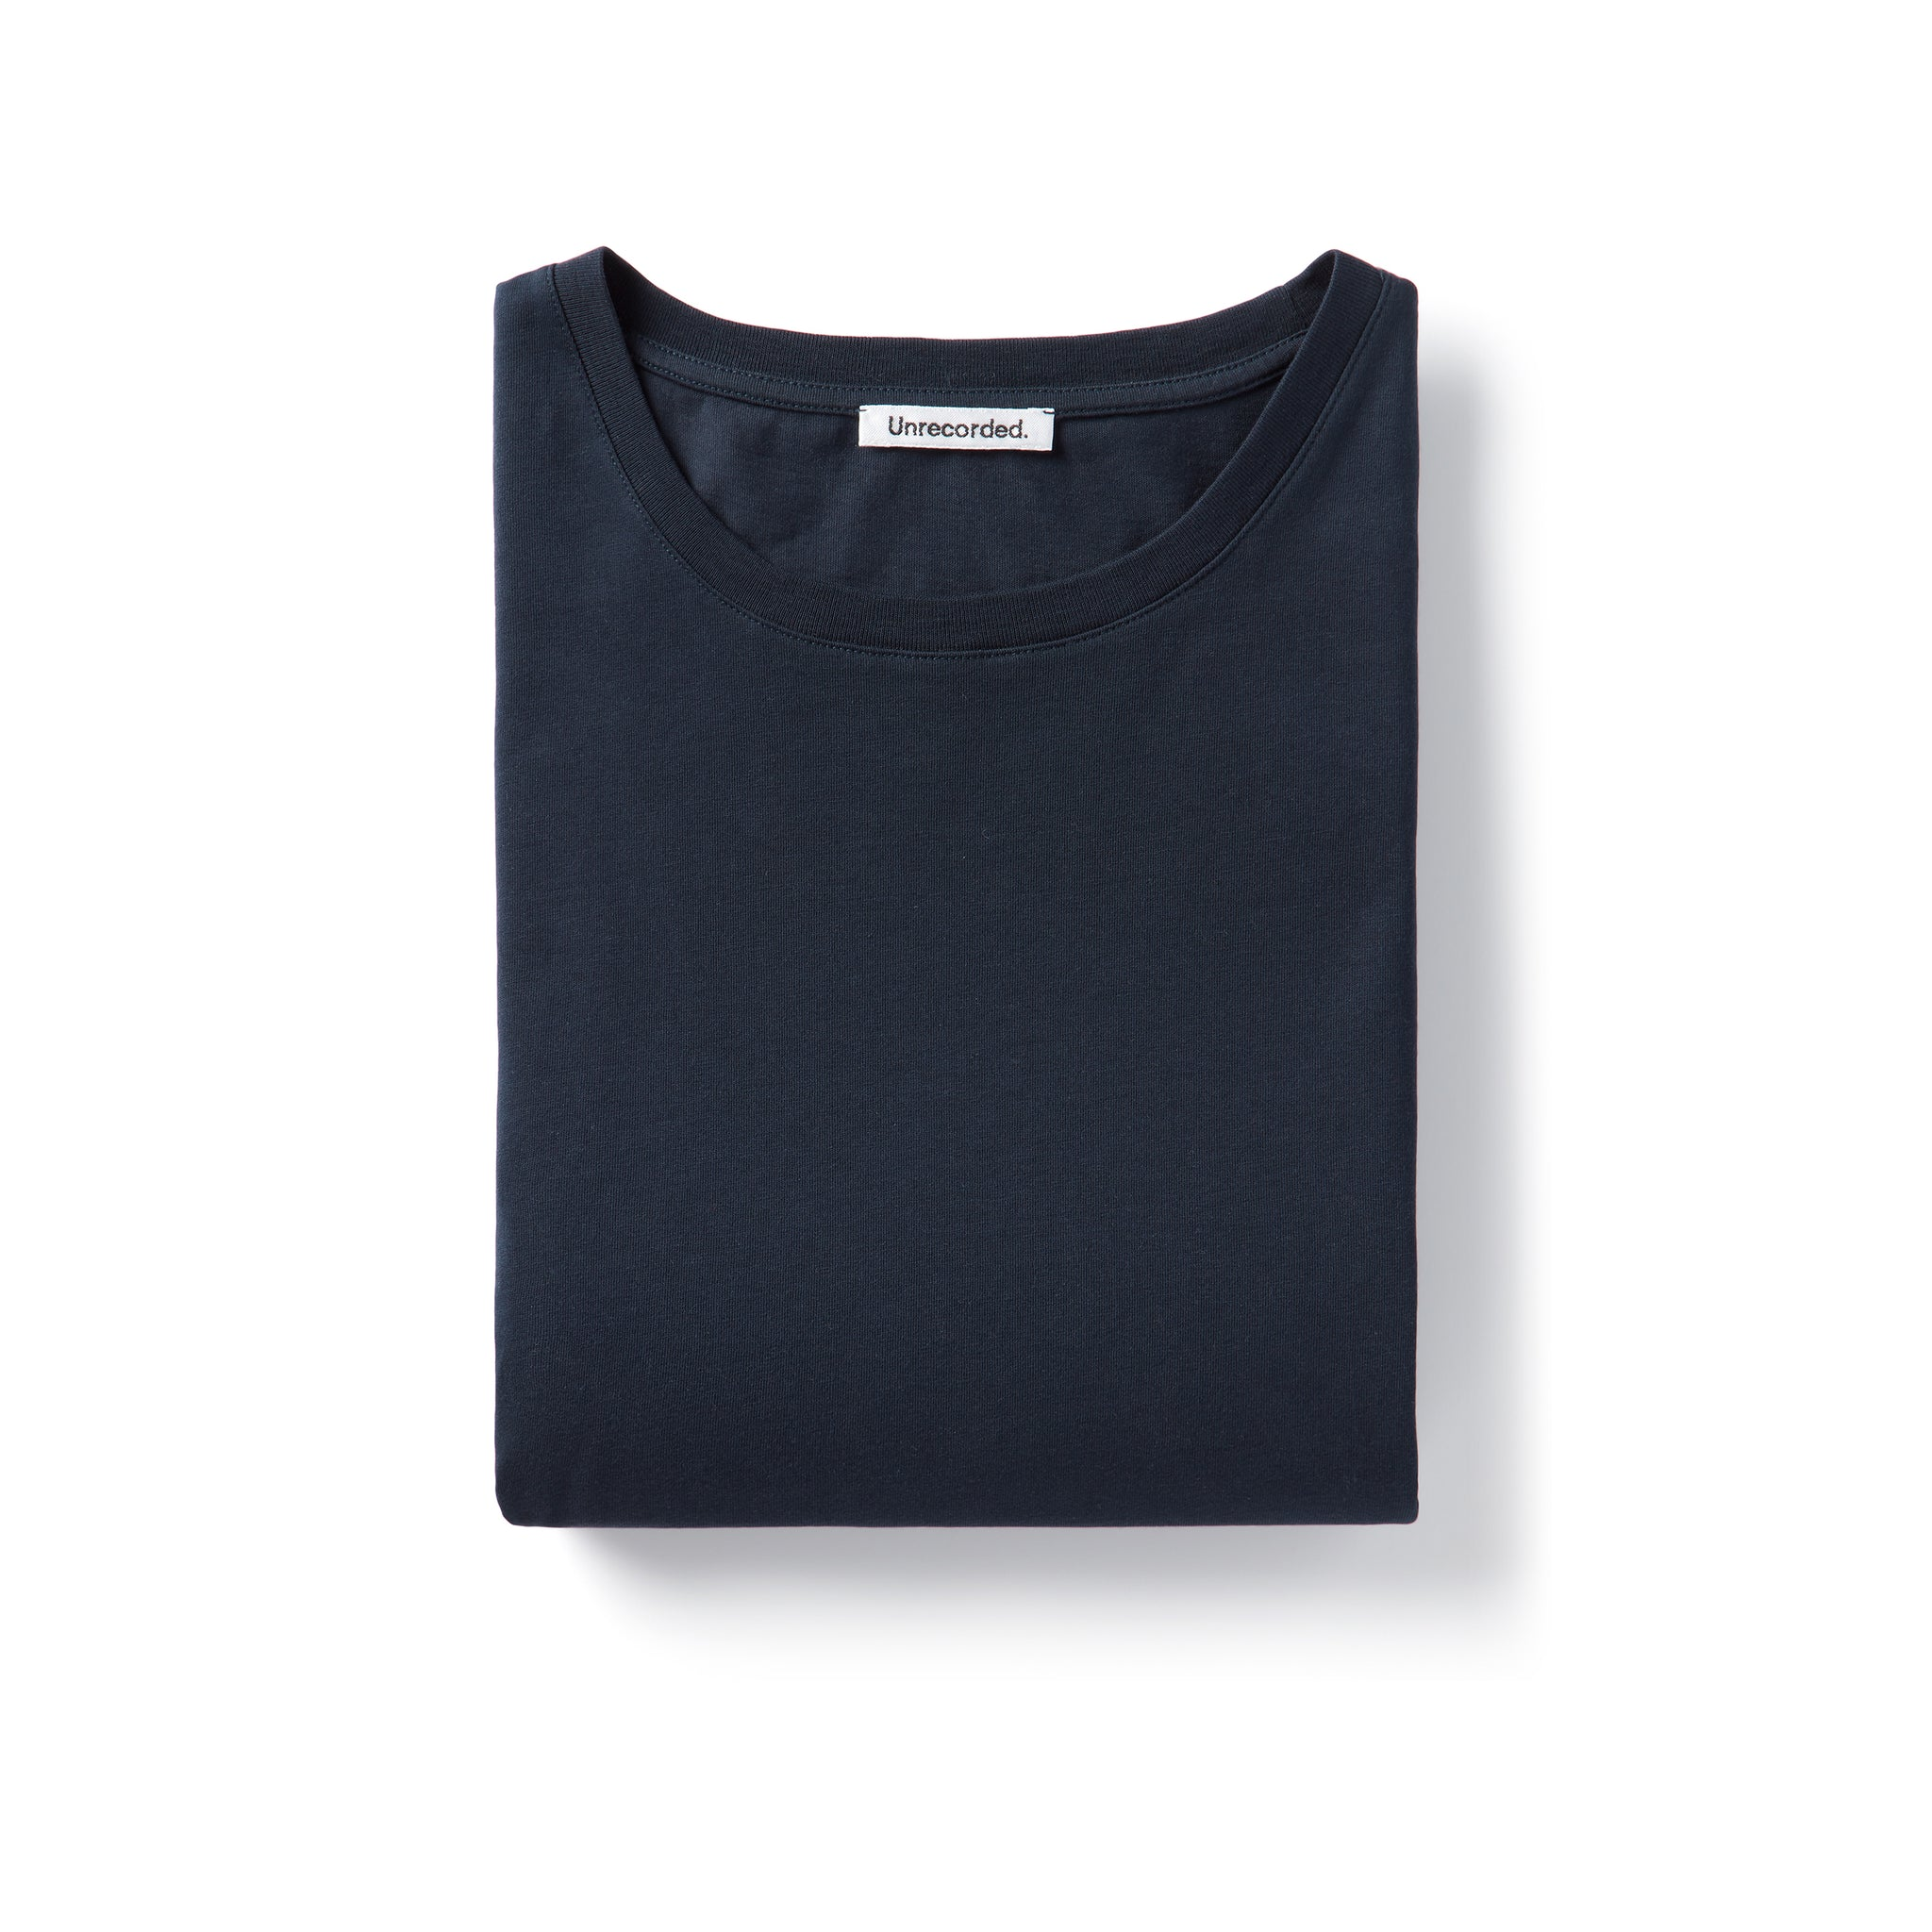 T-Shirt 155 GSM Navy - Unrecorded